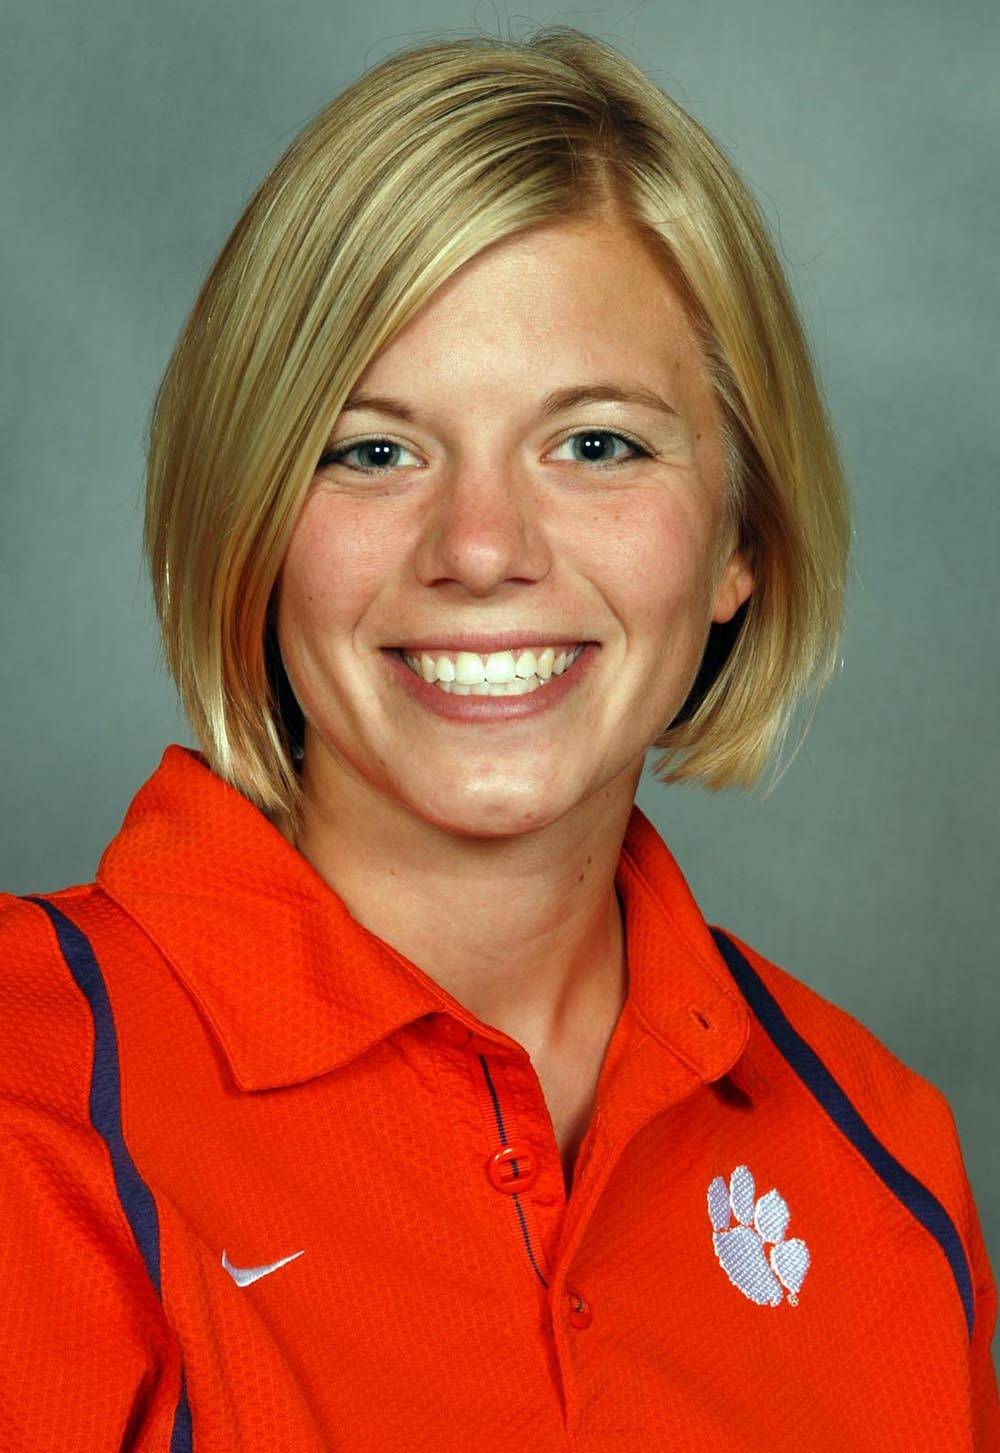 Abby Schreiter Joins Clemson Sports Medicine Staff